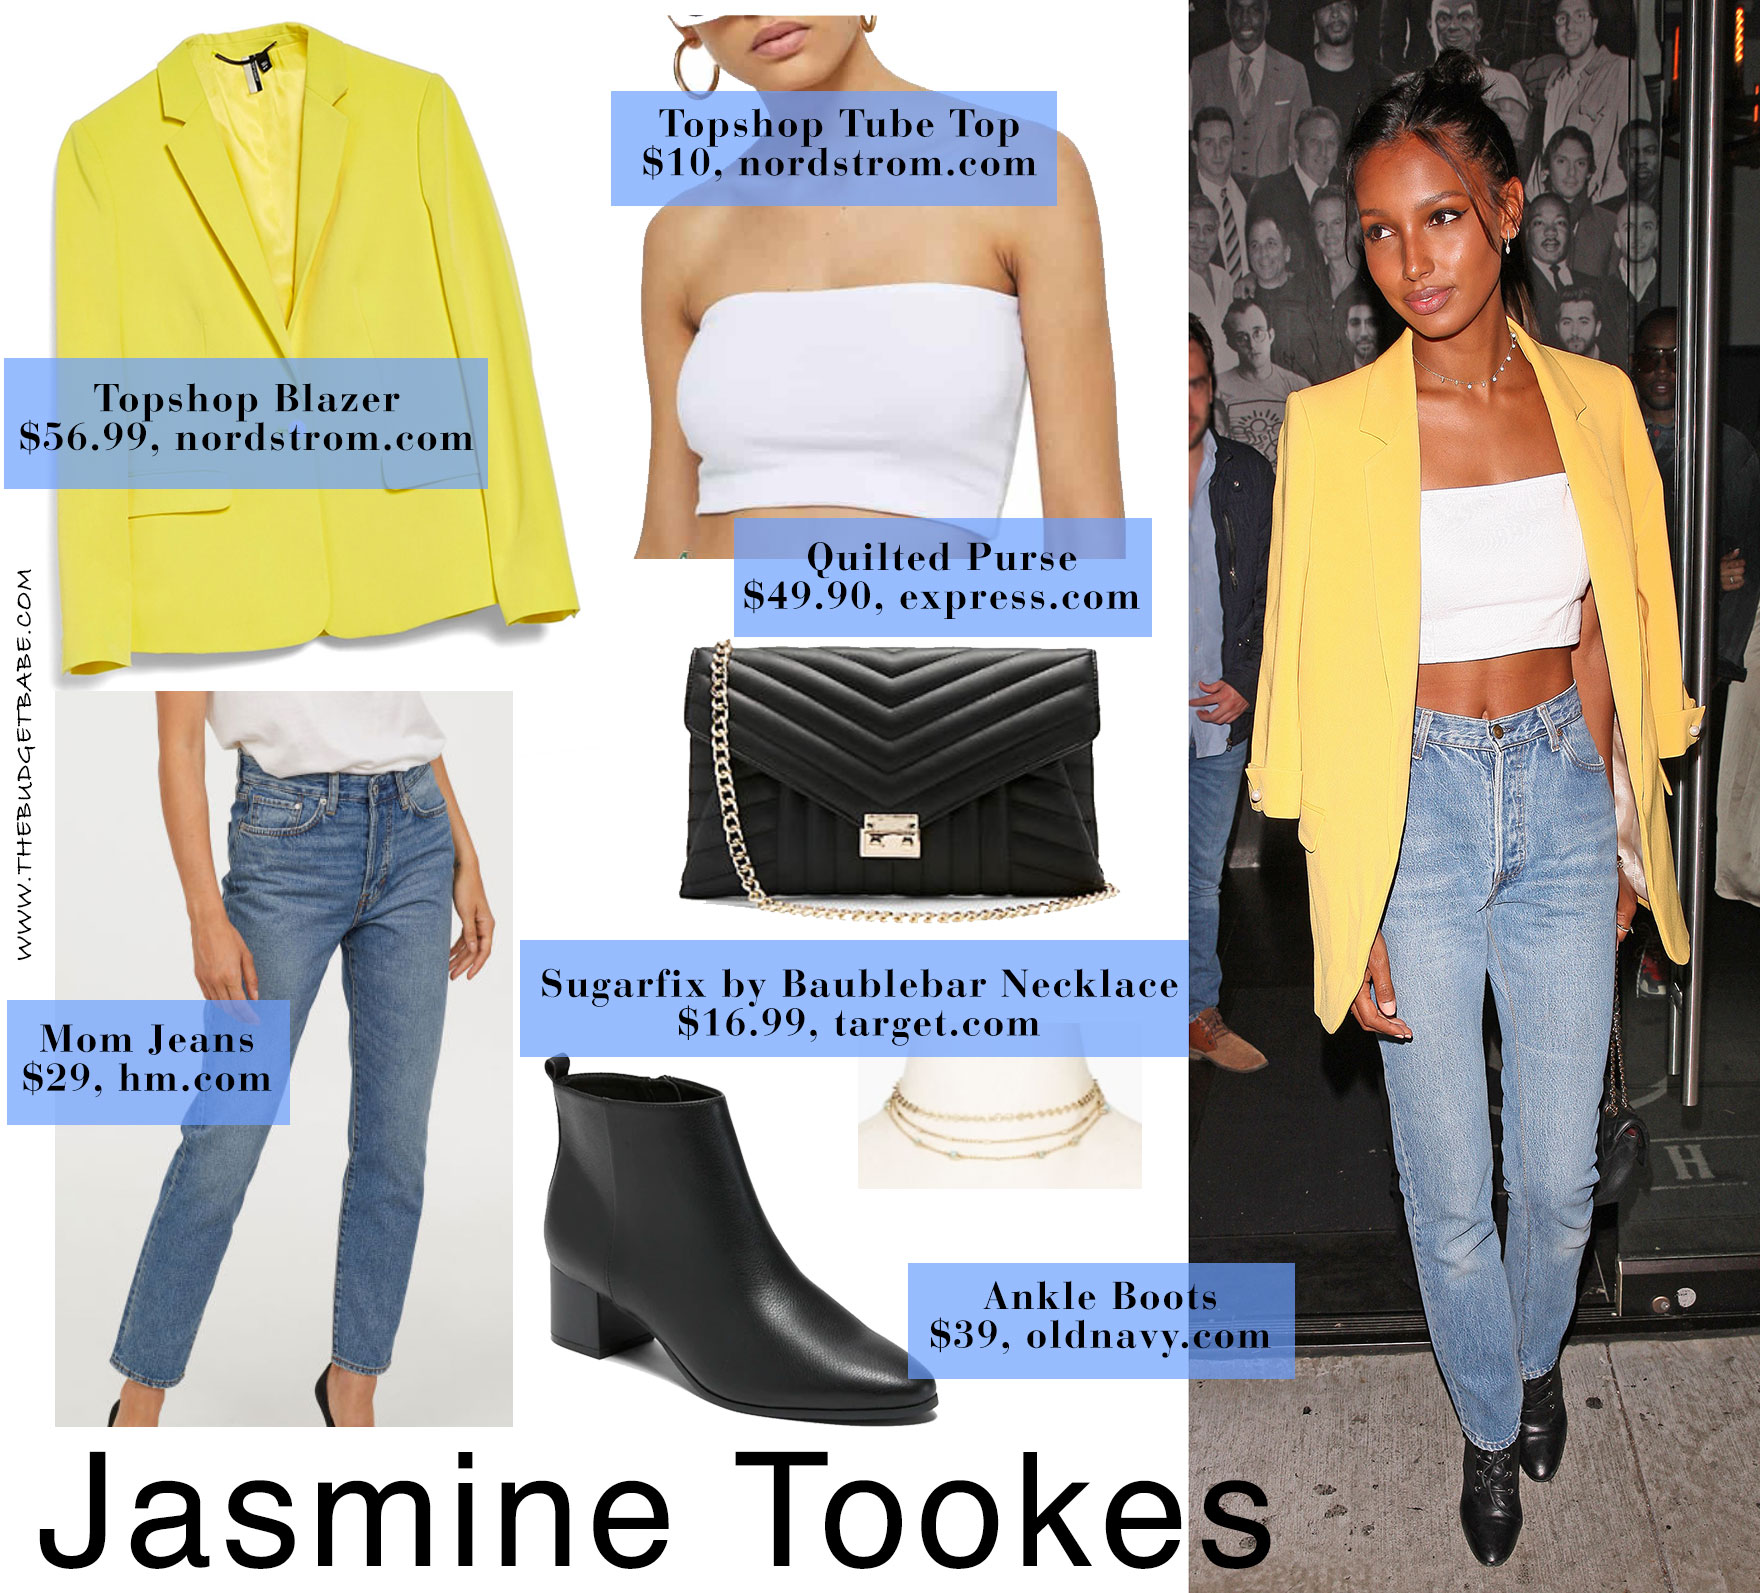 Jasmine Tookes wears a yellow blazer, white crop top and mom jeans